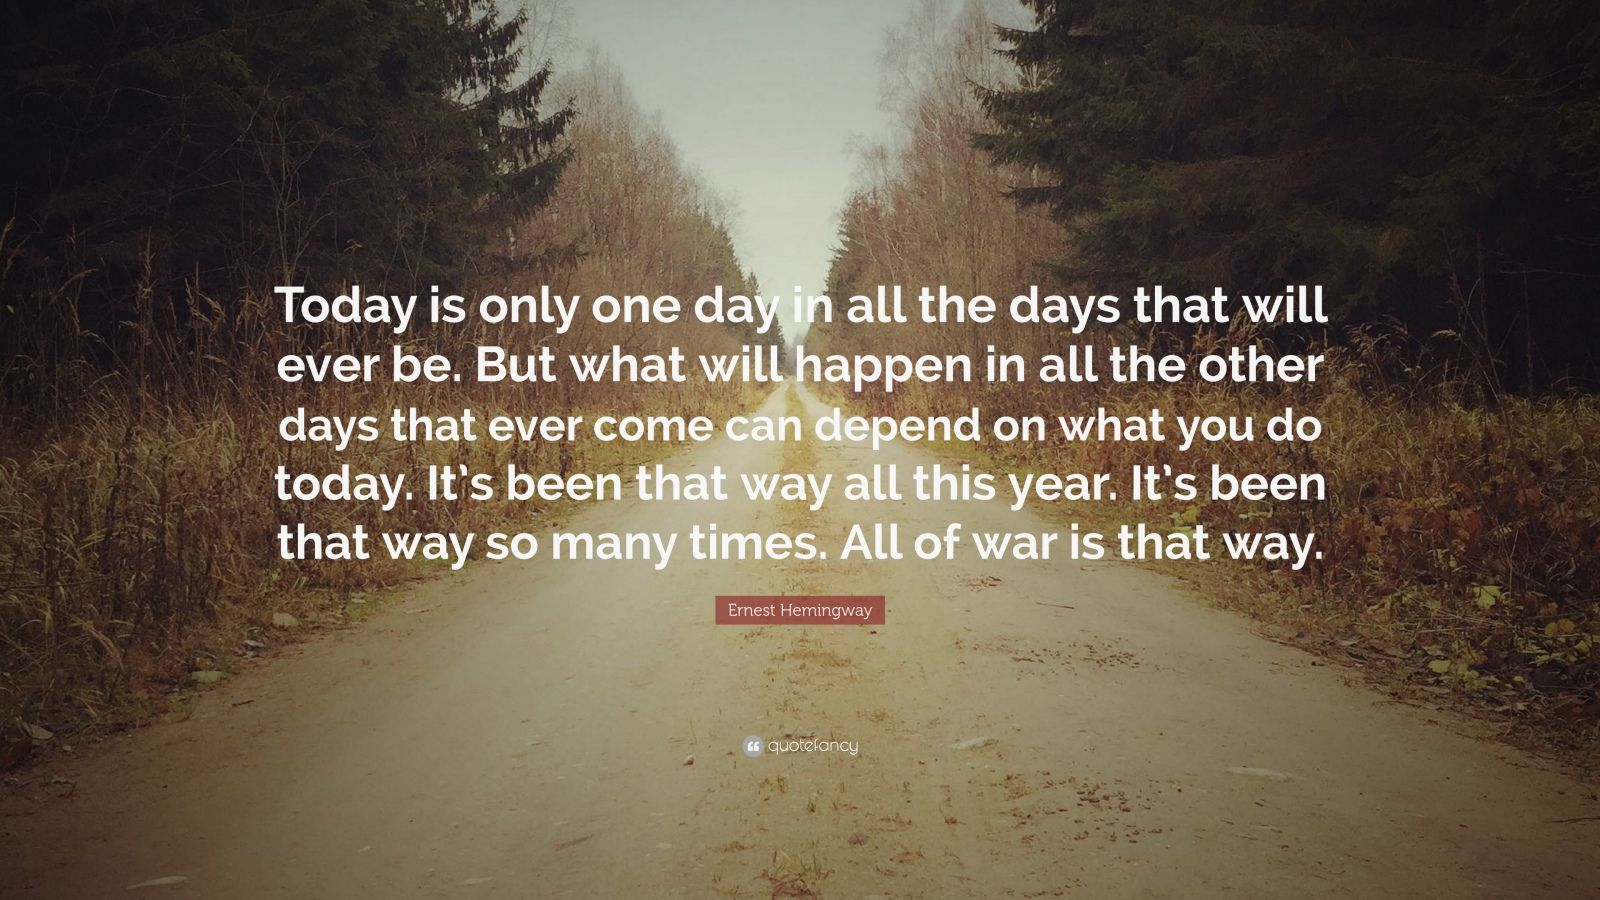 "Ernest Hemingway Quote: ""Today is only one day in all the days that will ever be. But what will happen in all the other days that ever come can depend on what you do today. It's been that way all this year. It's been that way so many times. All of war is that way."""